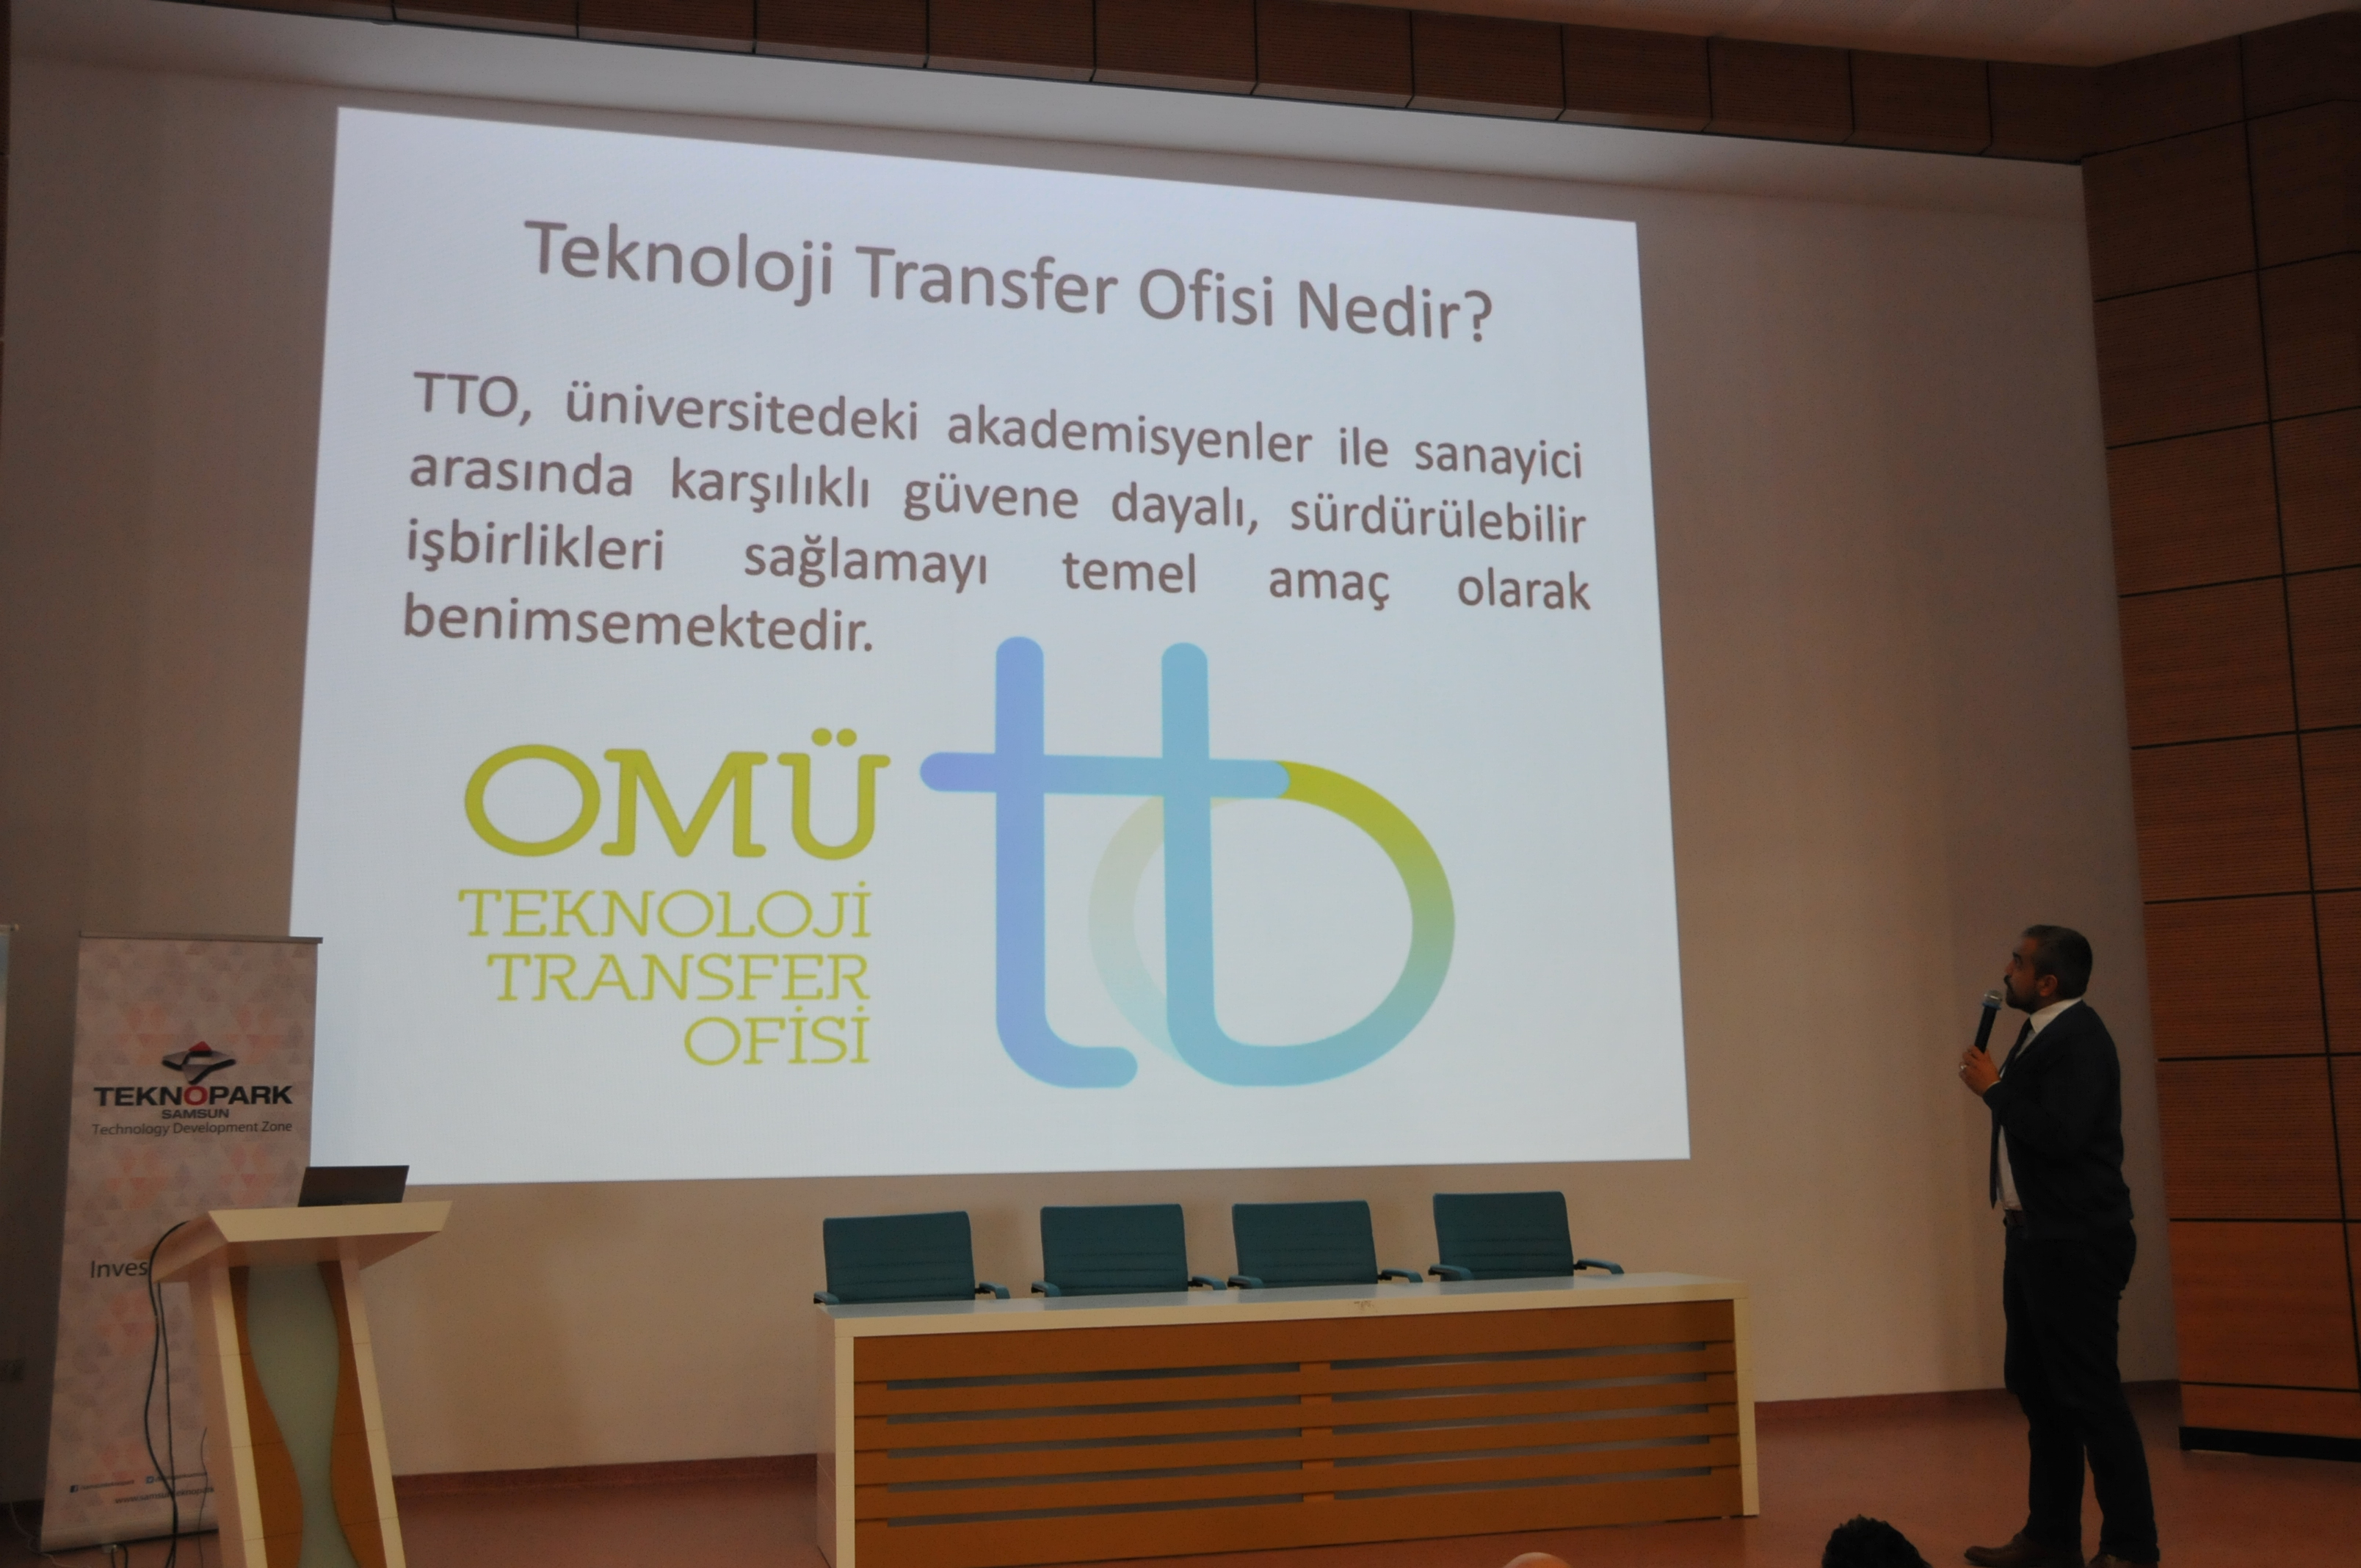 http://www.omu.edu.tr/sites/default/files/files/samsun_technopark_shares_its_projects_with_students/dsc_0166.jpg